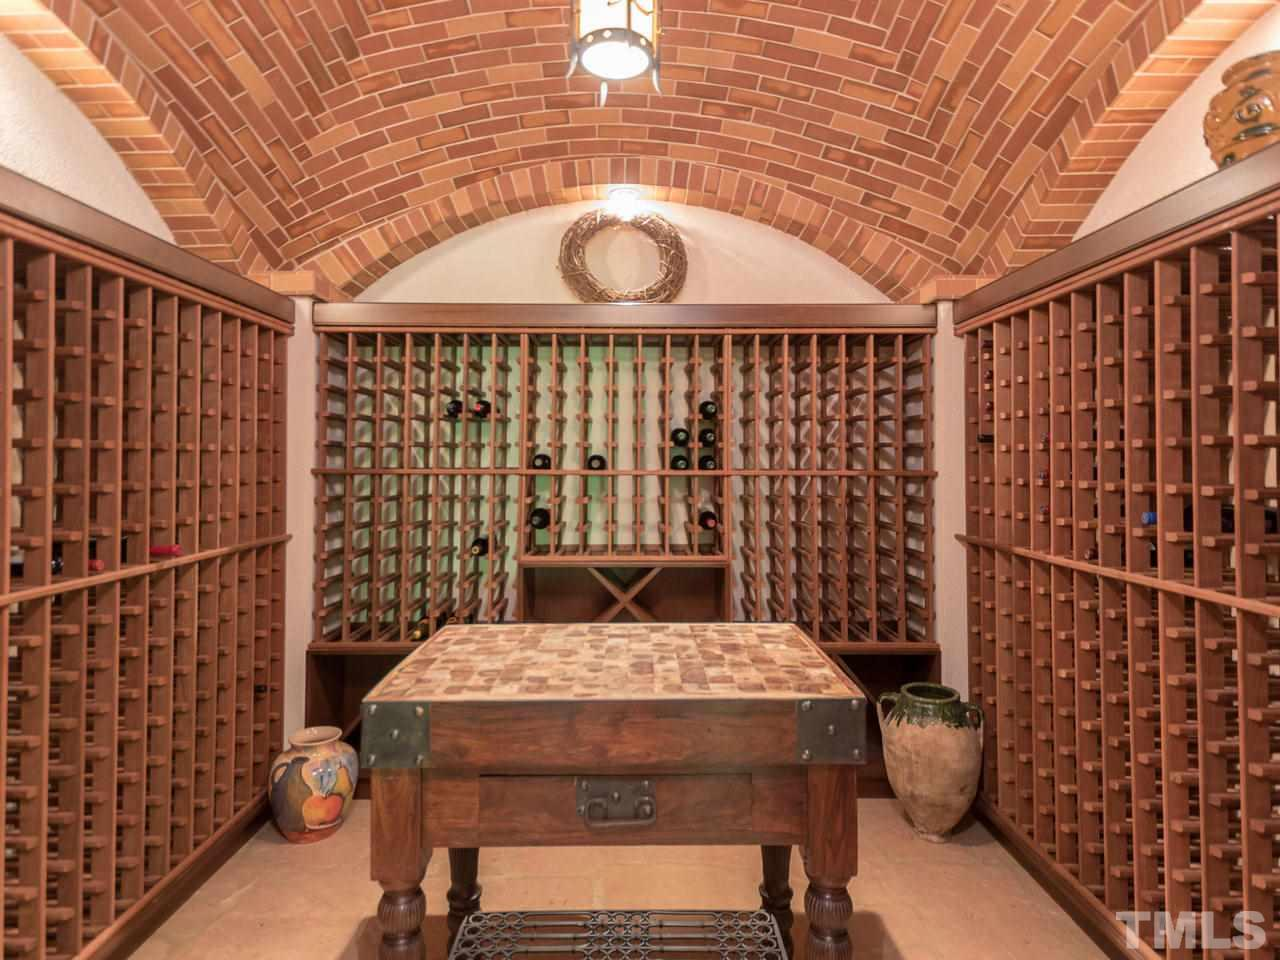 1000+ Bottle conditioned wine room. Custom brick work ceiling, center island for tasting.